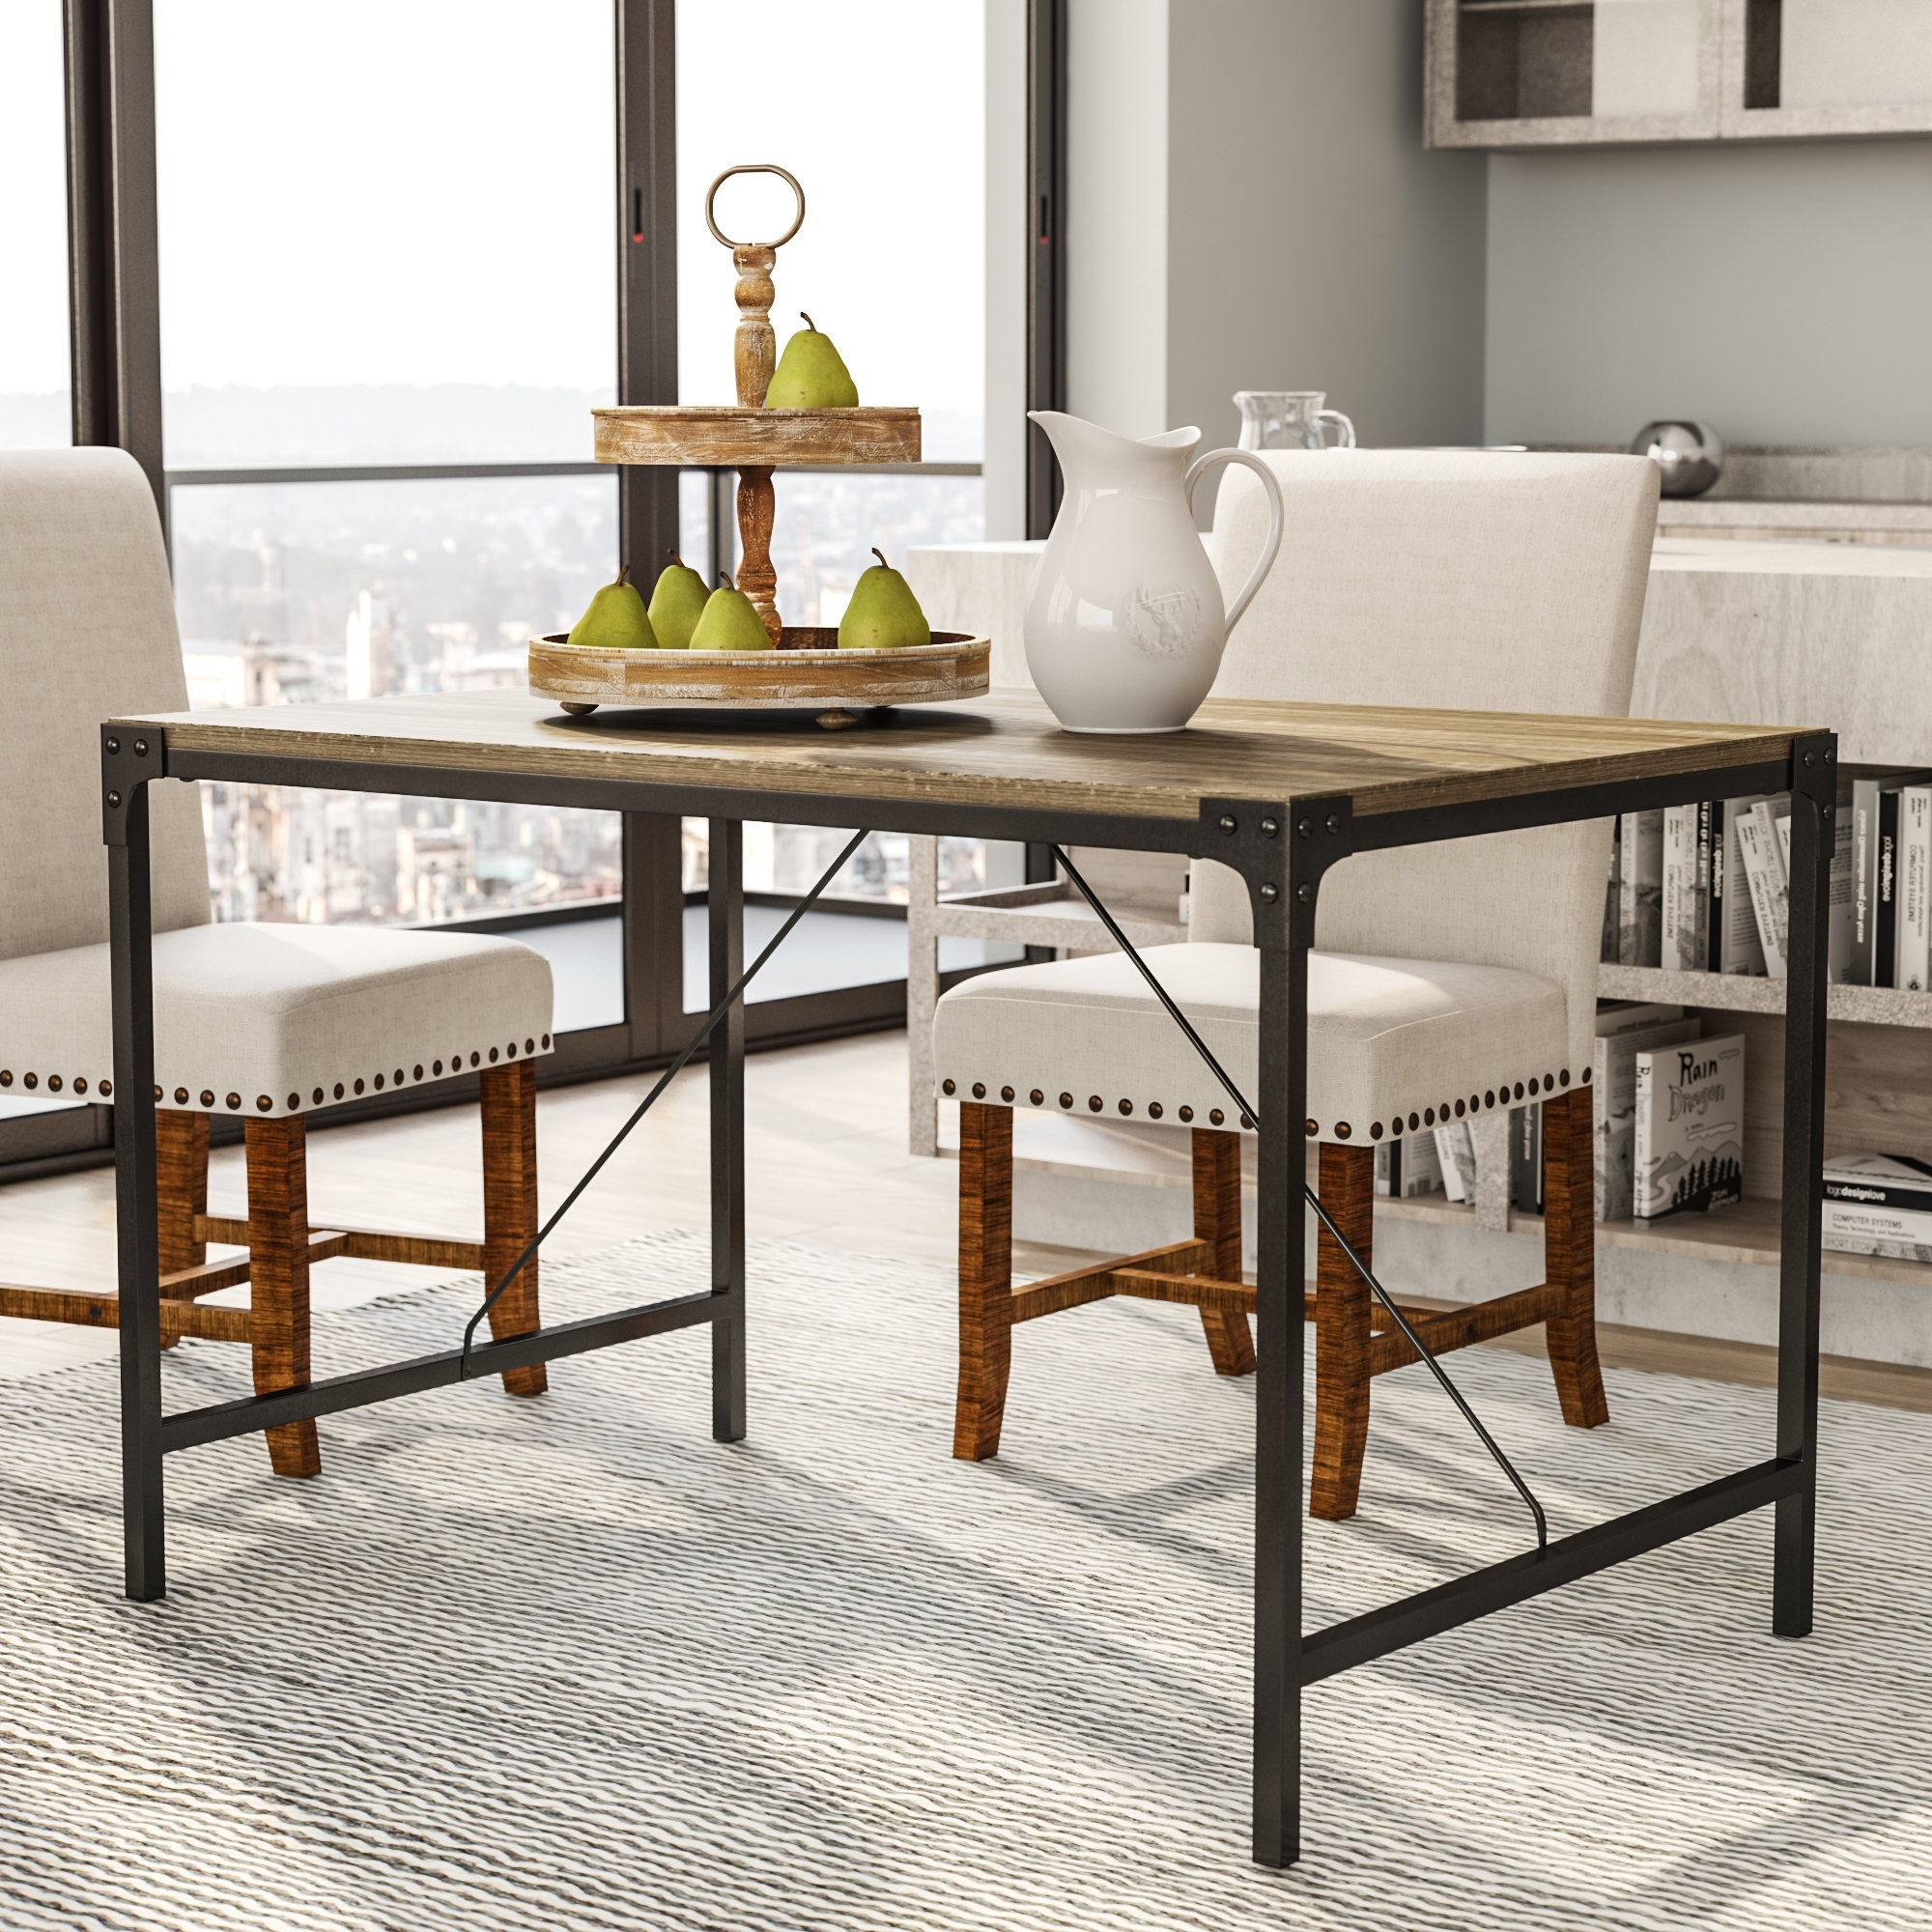 Laurel Foundry Modern Farmhouse Madeline Angle Iron And Wood Dining Pertaining To 2018 Iron And Wood Dining Tables (View 14 of 20)